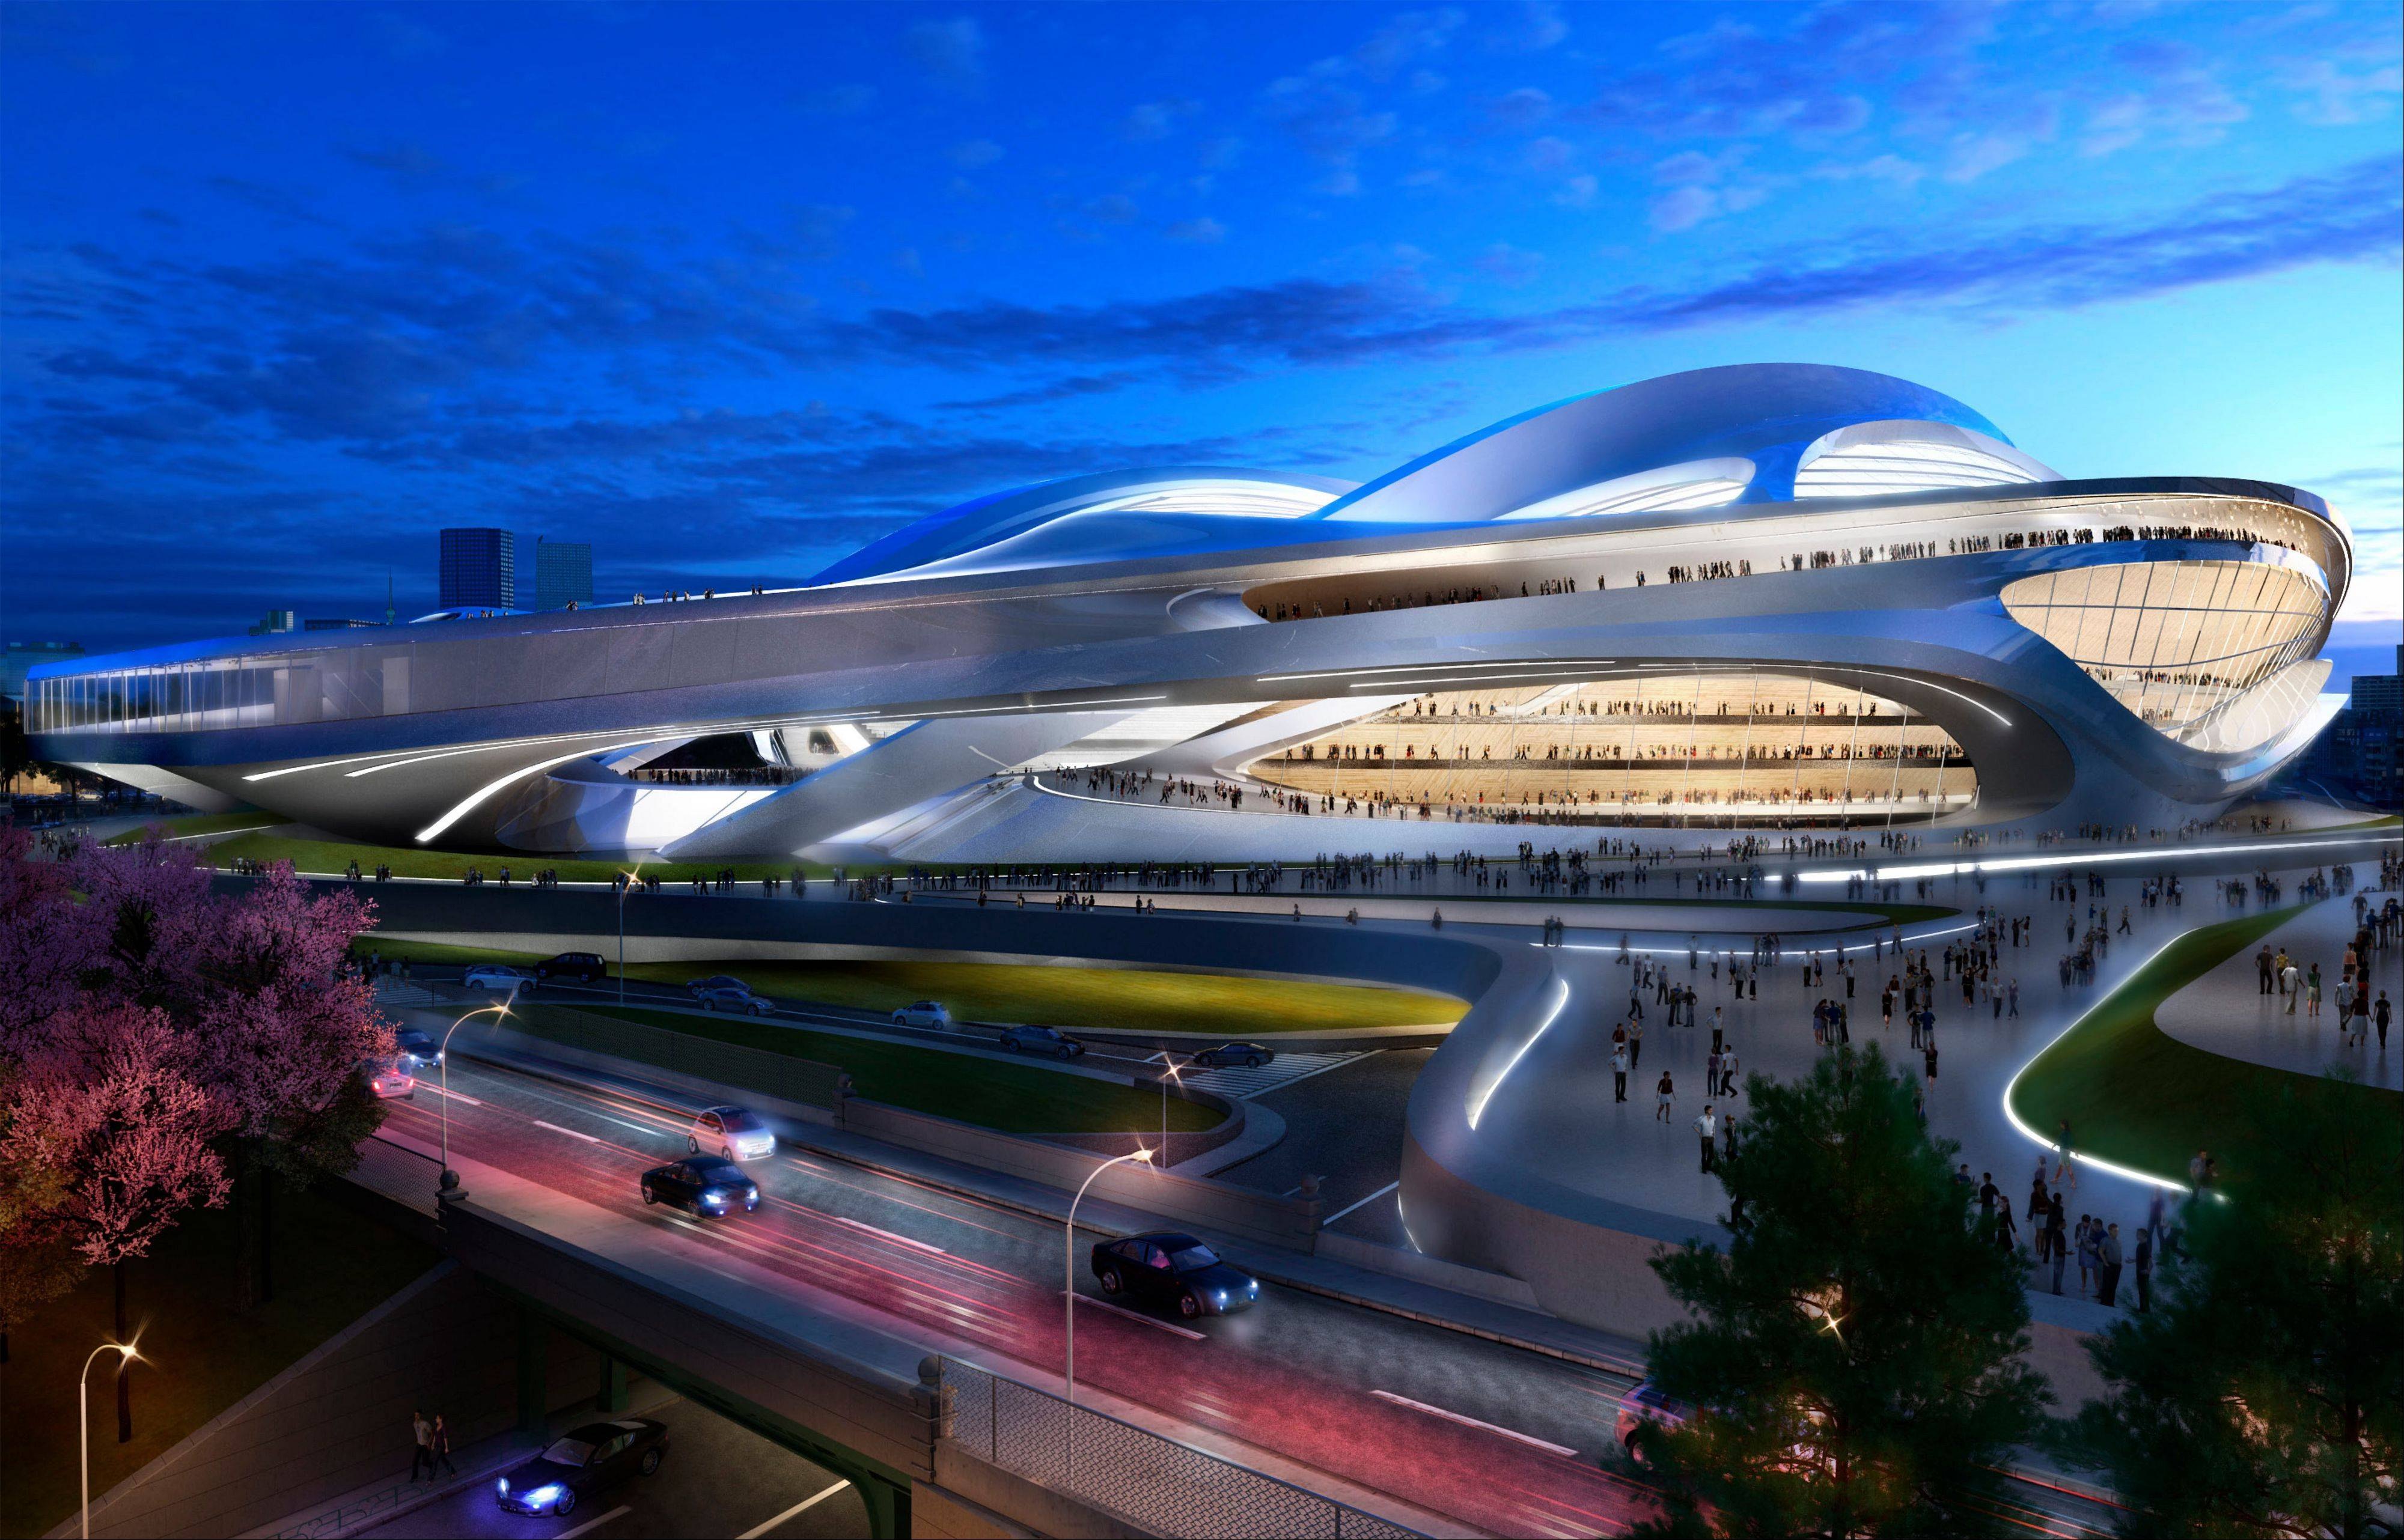 An artist rendering of the new National Stadium, the main venue Tokyo plans to build for the 2020 Tokyo Olympics. A prominent Japanese architect is campaigning to reduce the size of the spaceshiplike main stadium approved for the Olympics, saying it's too expensive and would clash with its surroundings.